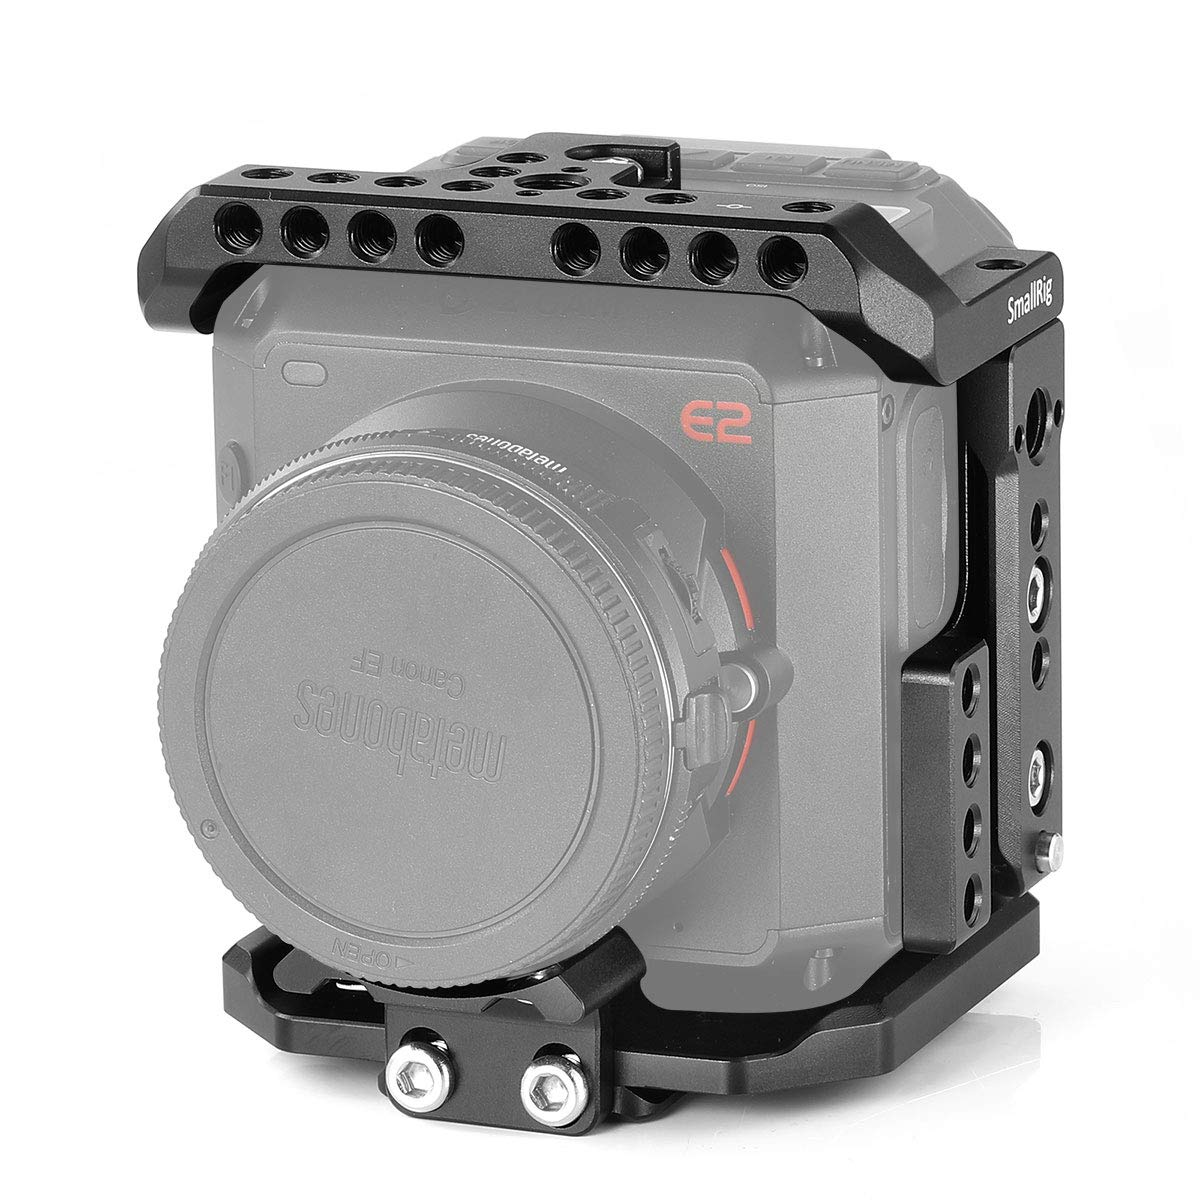 Smallrig 2264 Cage for Z cam E2 Camera,Camera Cage with N...